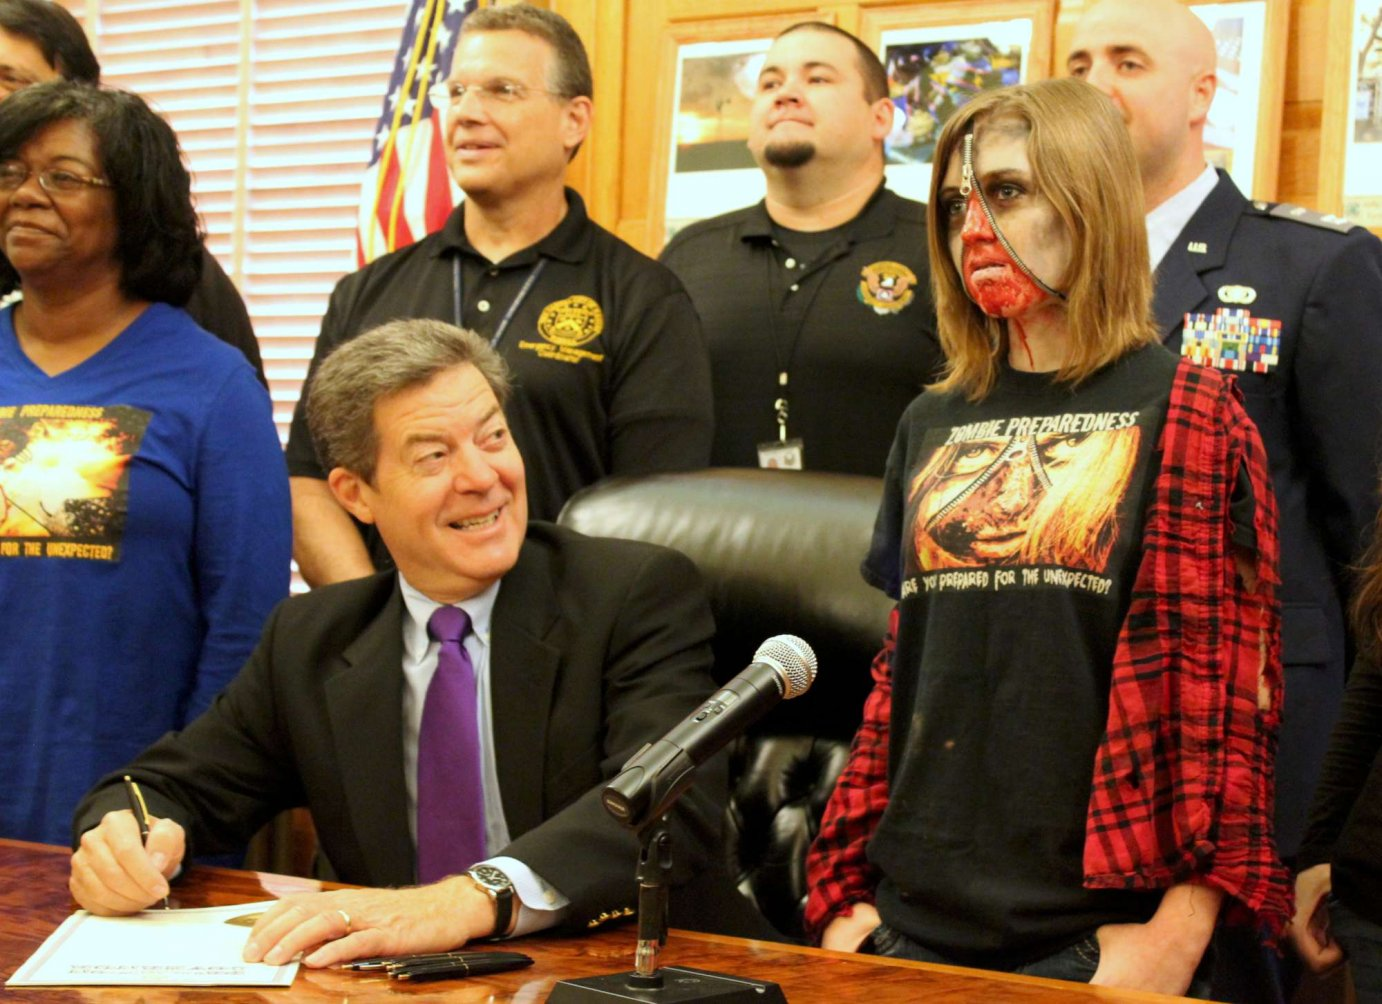 Governor Brownback and 15-year-old Faith Tucking at the signing ceremony. (Photo by Stephen Koranda)